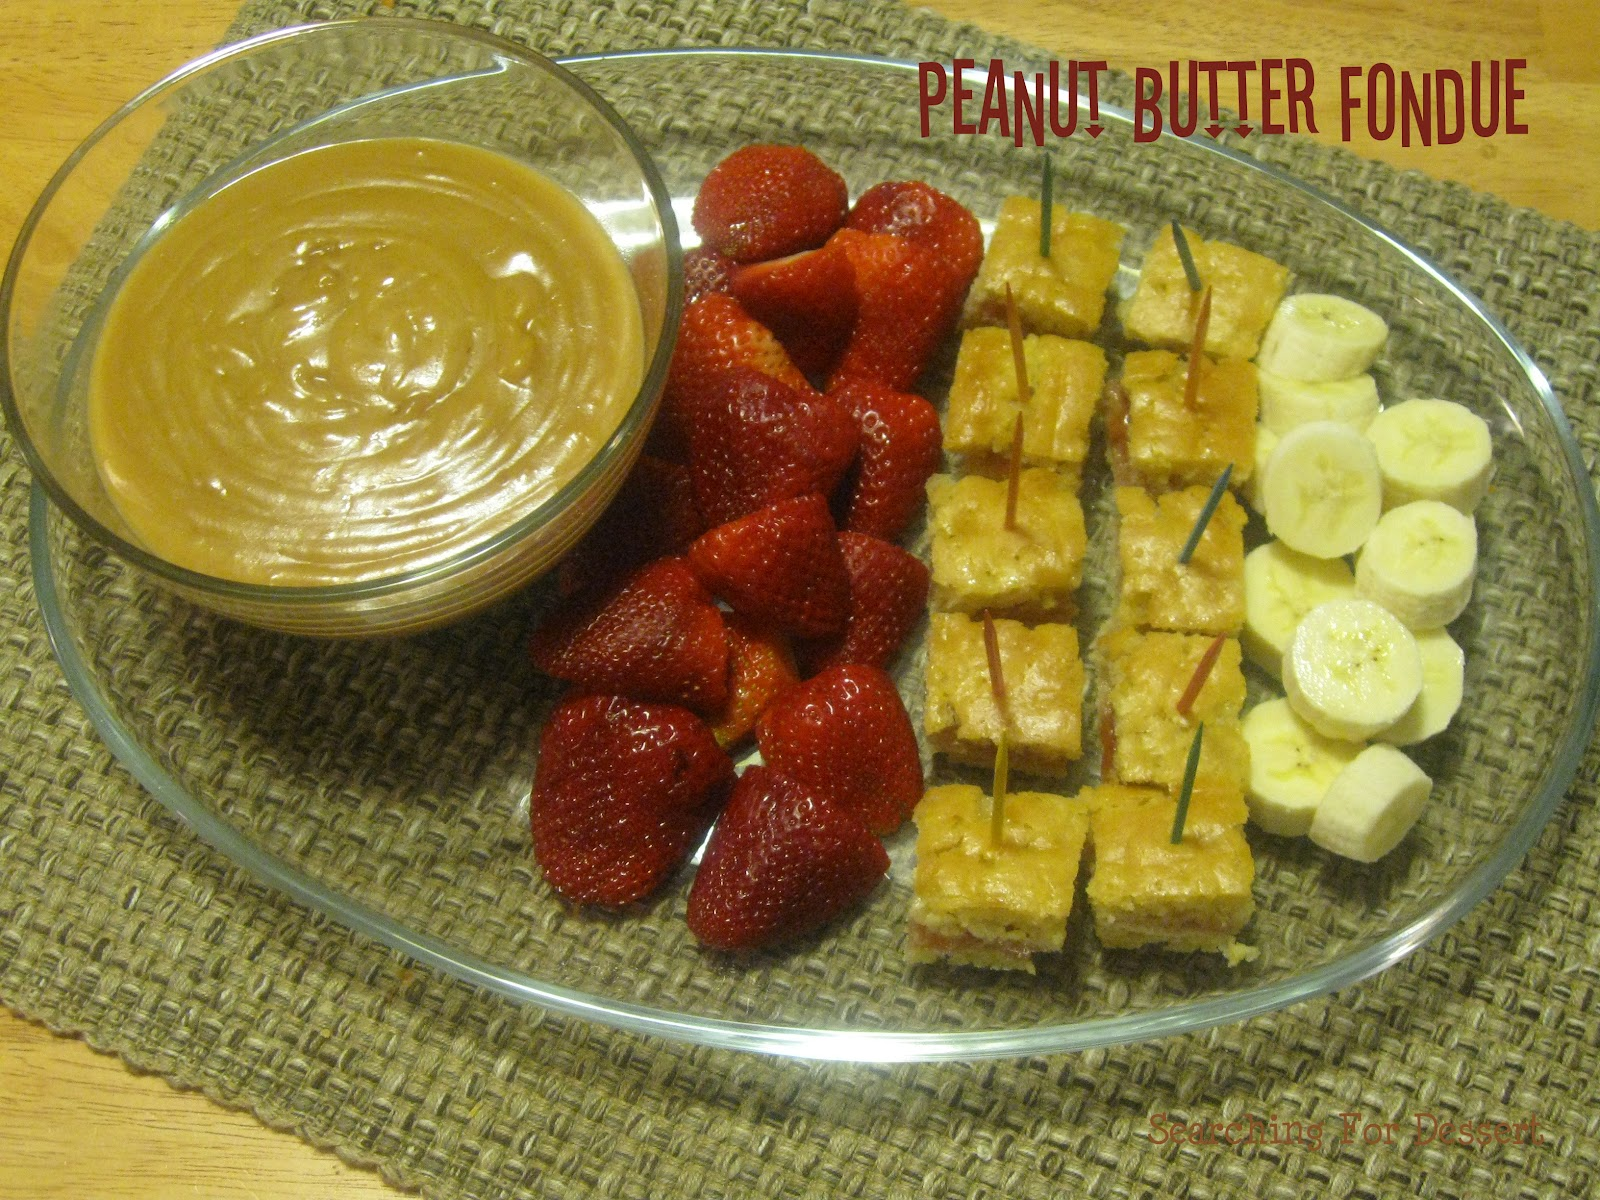 Peanut Butter Fondue with Jelly Filled Pound Cake | Searching for ...